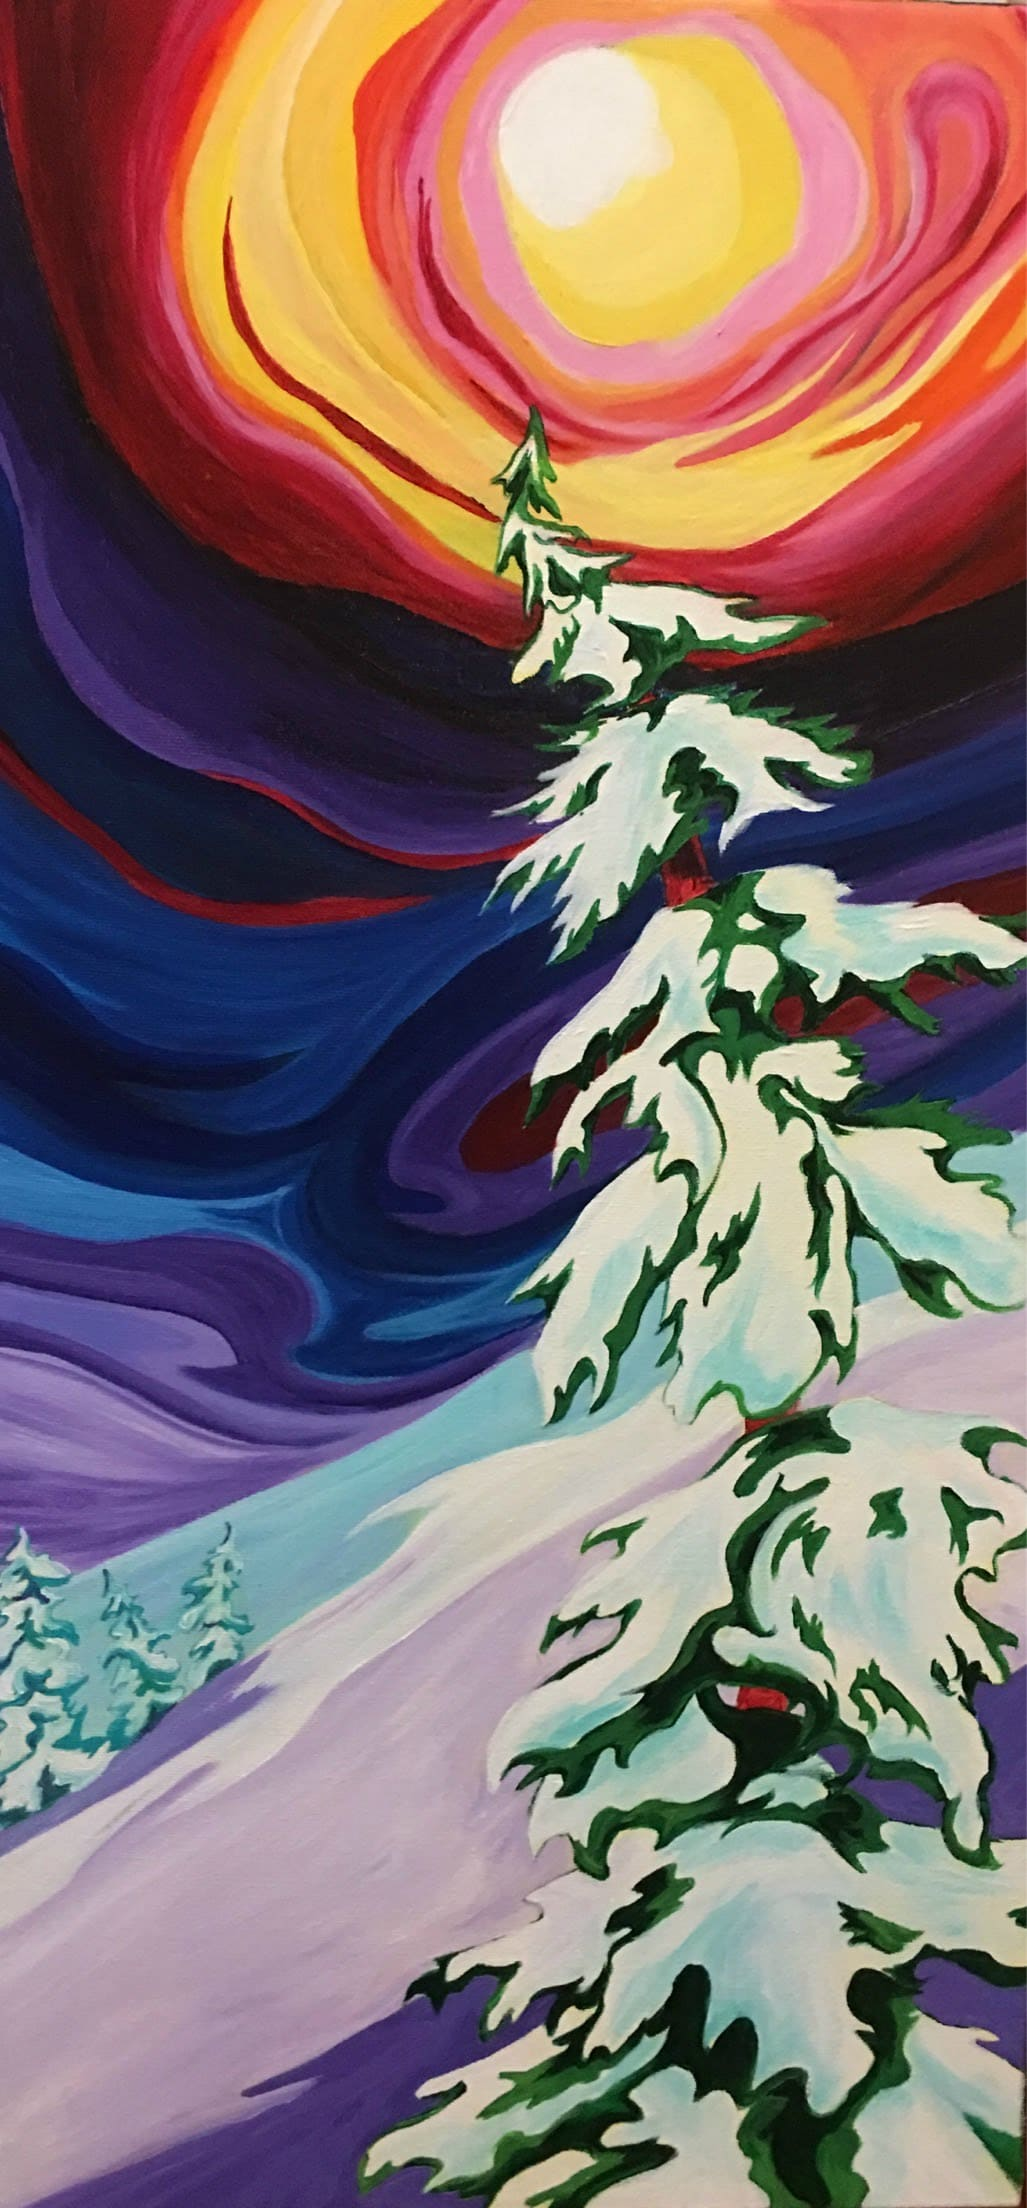 Colorful art skies and trees by Janice Gallant www.thecreationguild.com